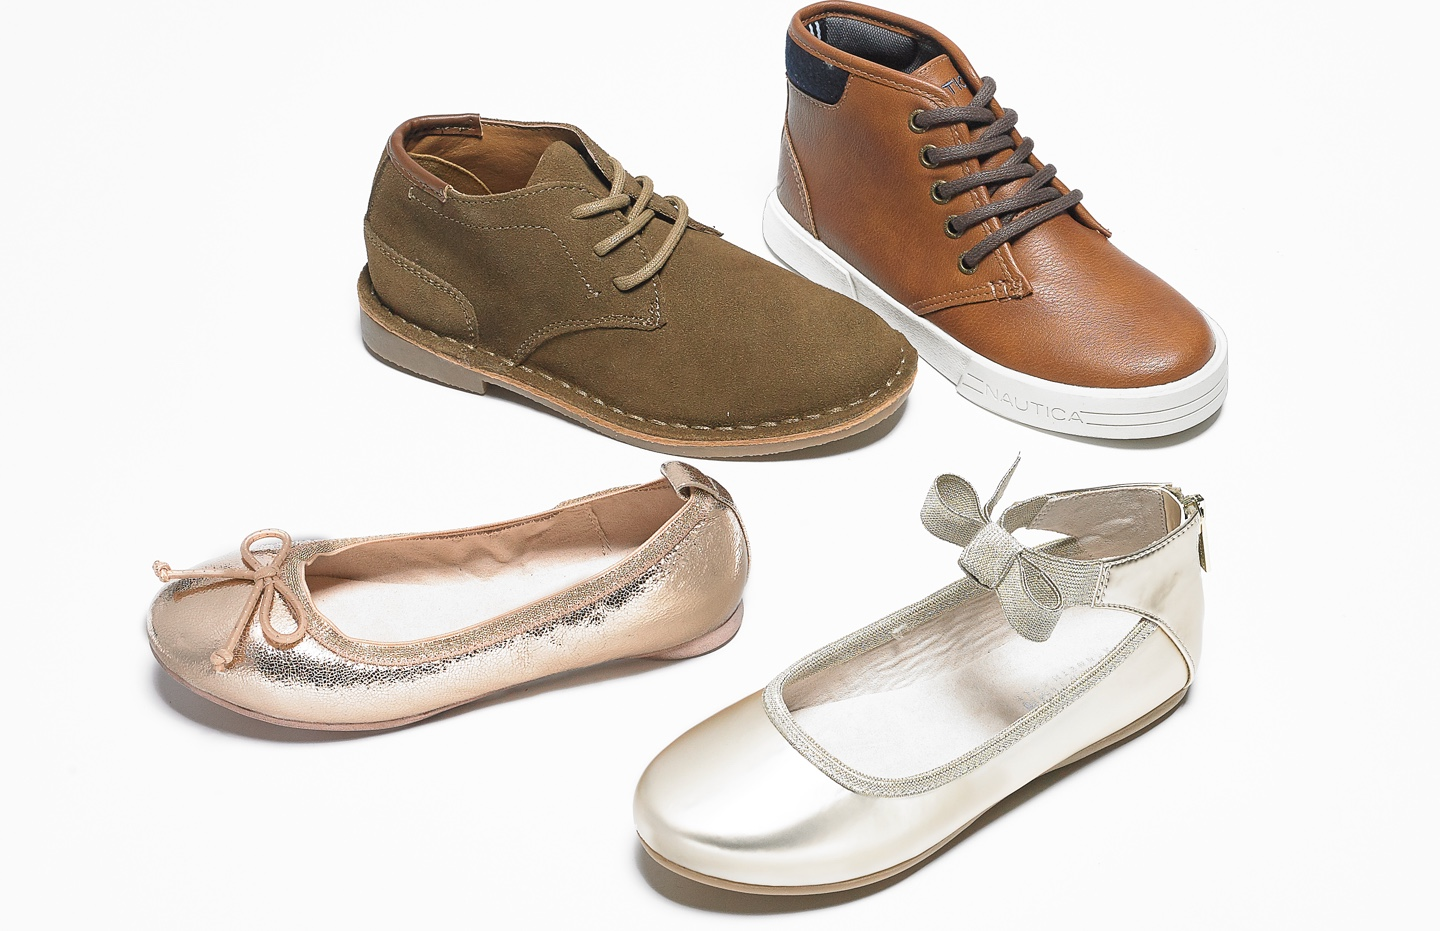 size 32 in us shoes children's